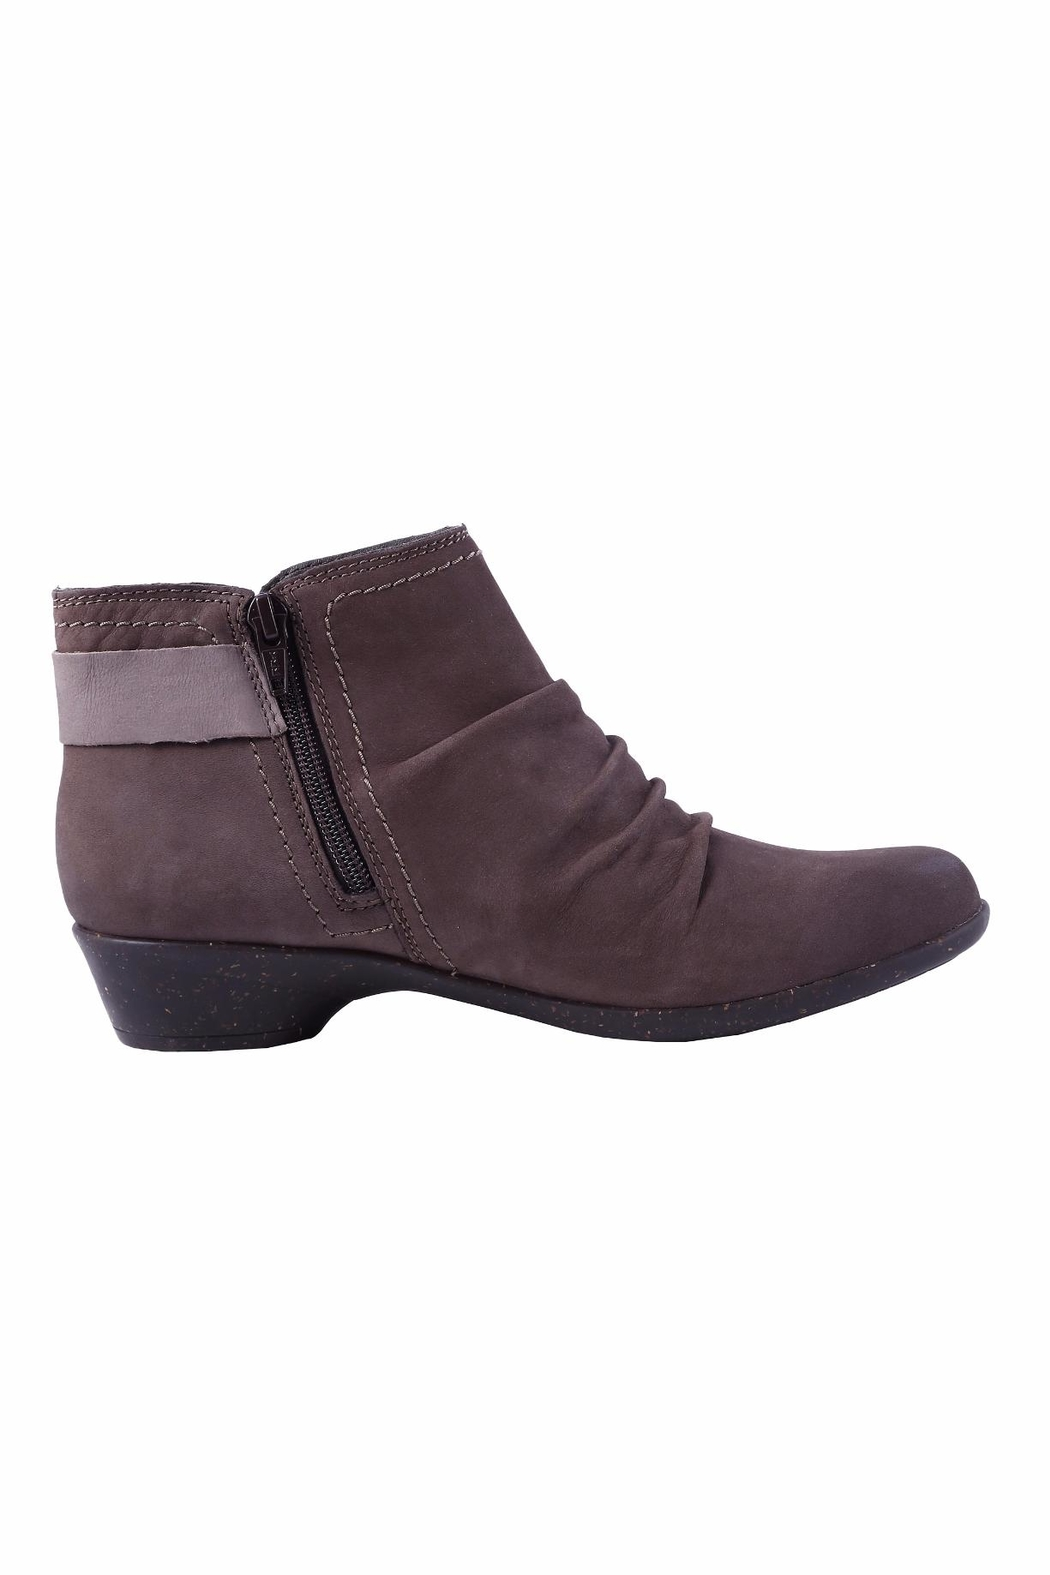 Cobb Hill Nicole Ankle Booties - Side Cropped Image